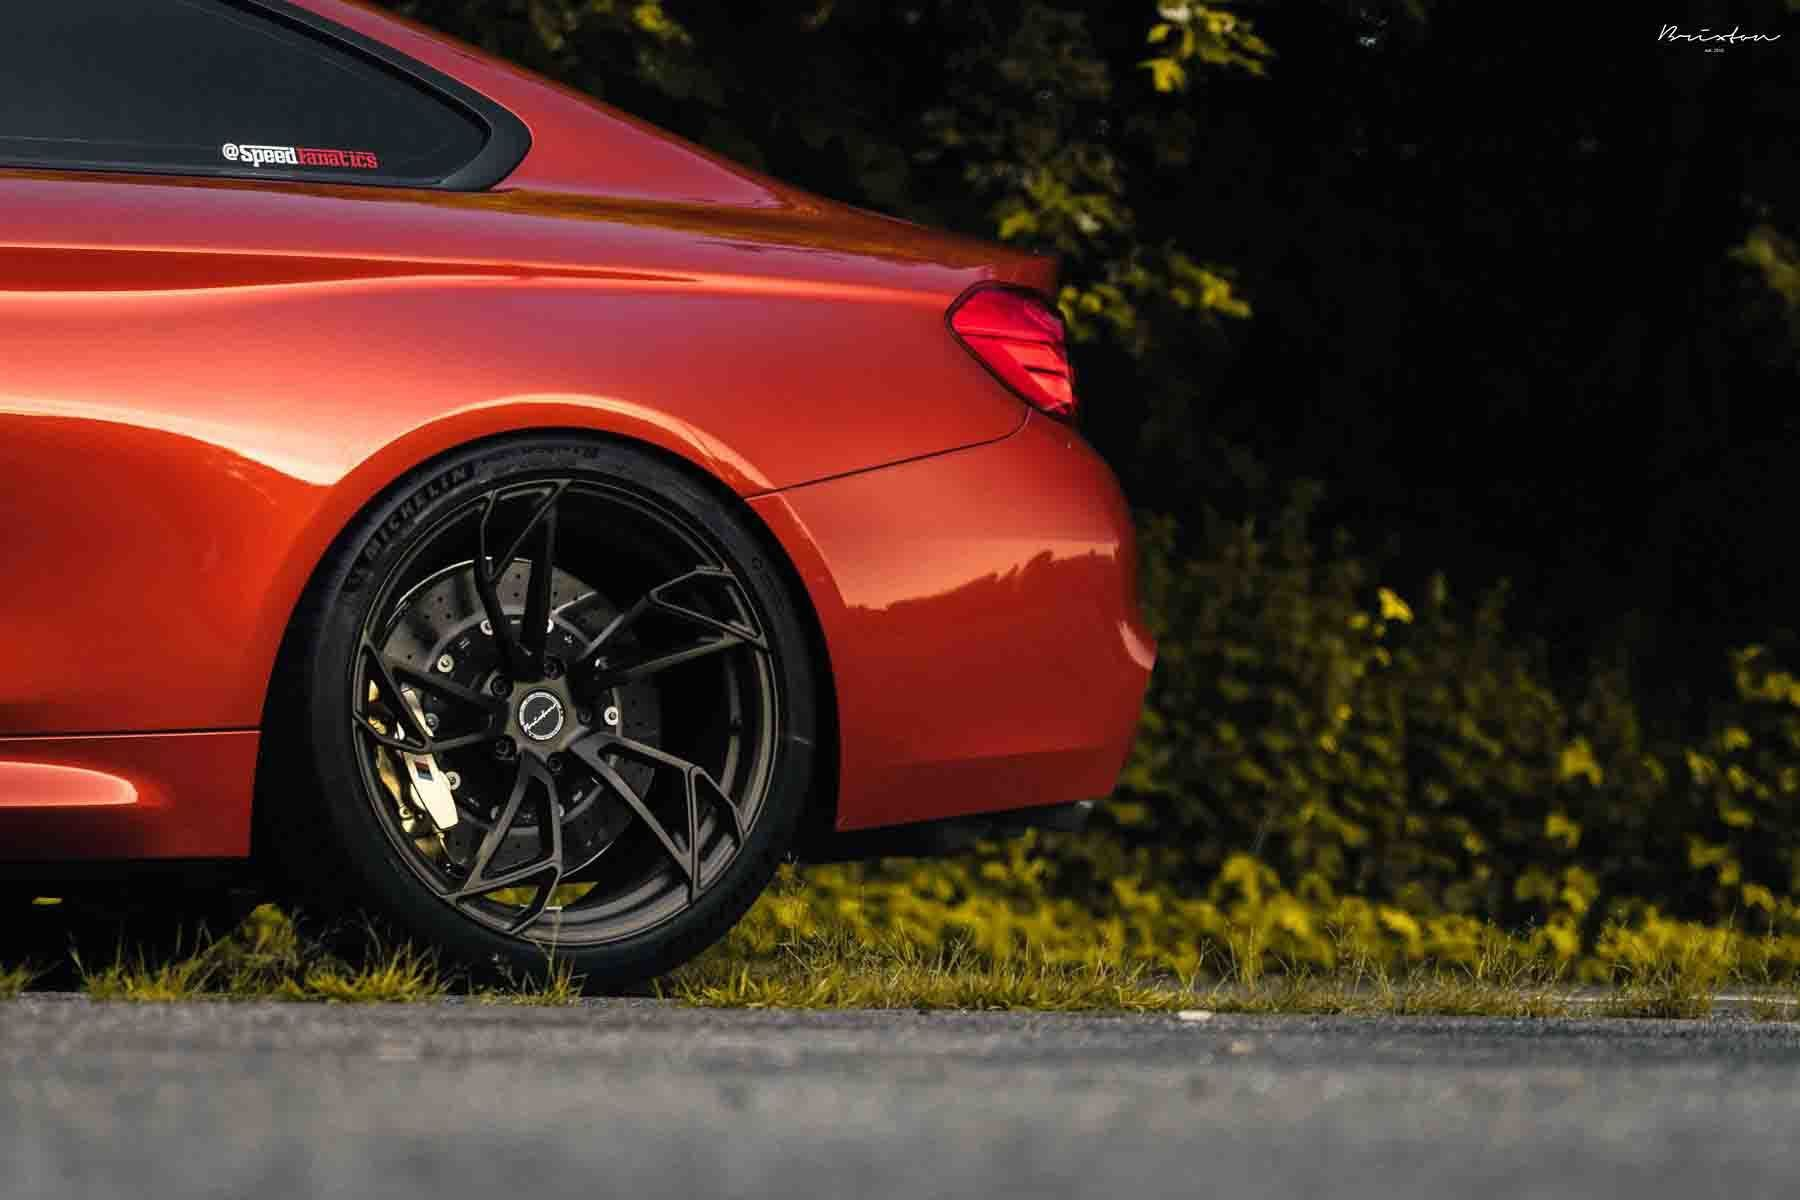 images-products-1-1963-232974251-brixton-forged-wheels-red-bmw-m3-f80-brixton-forged-pf1-ultrasport-1-piece-concave-forged-wheels.jpg